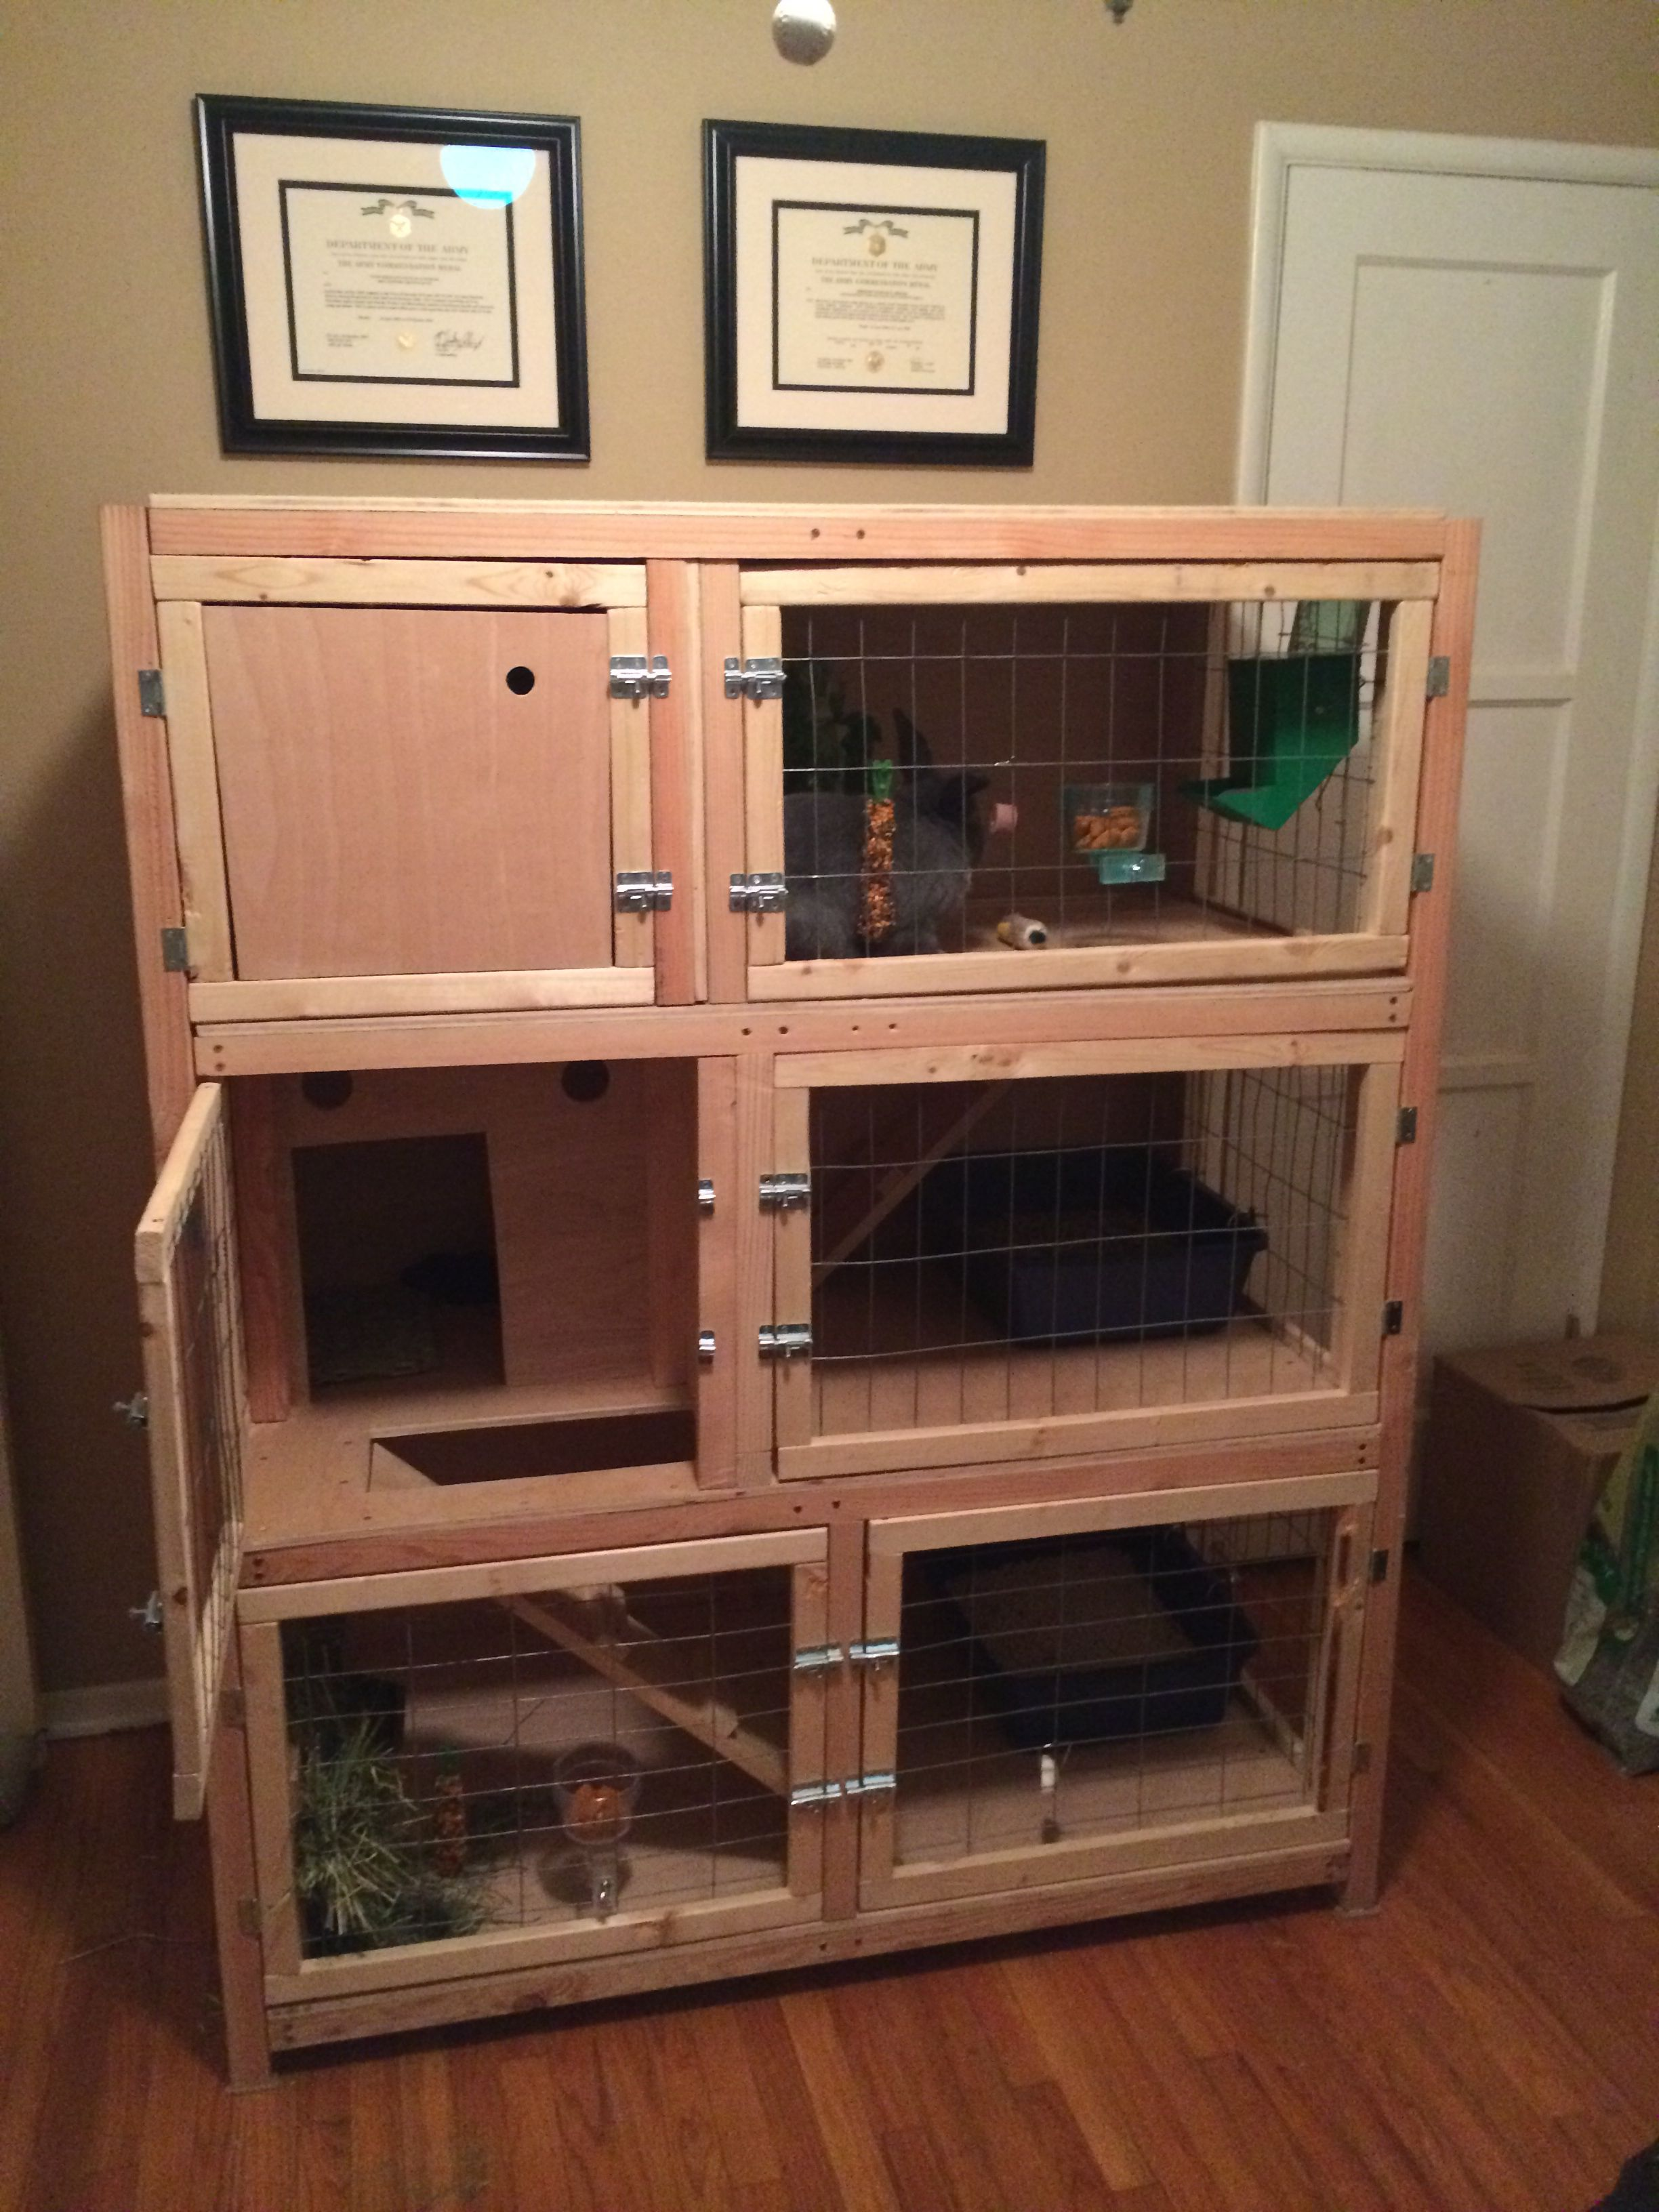 Homemade wooden three story rabbit hutch for multiple for What is a rabbit hutch